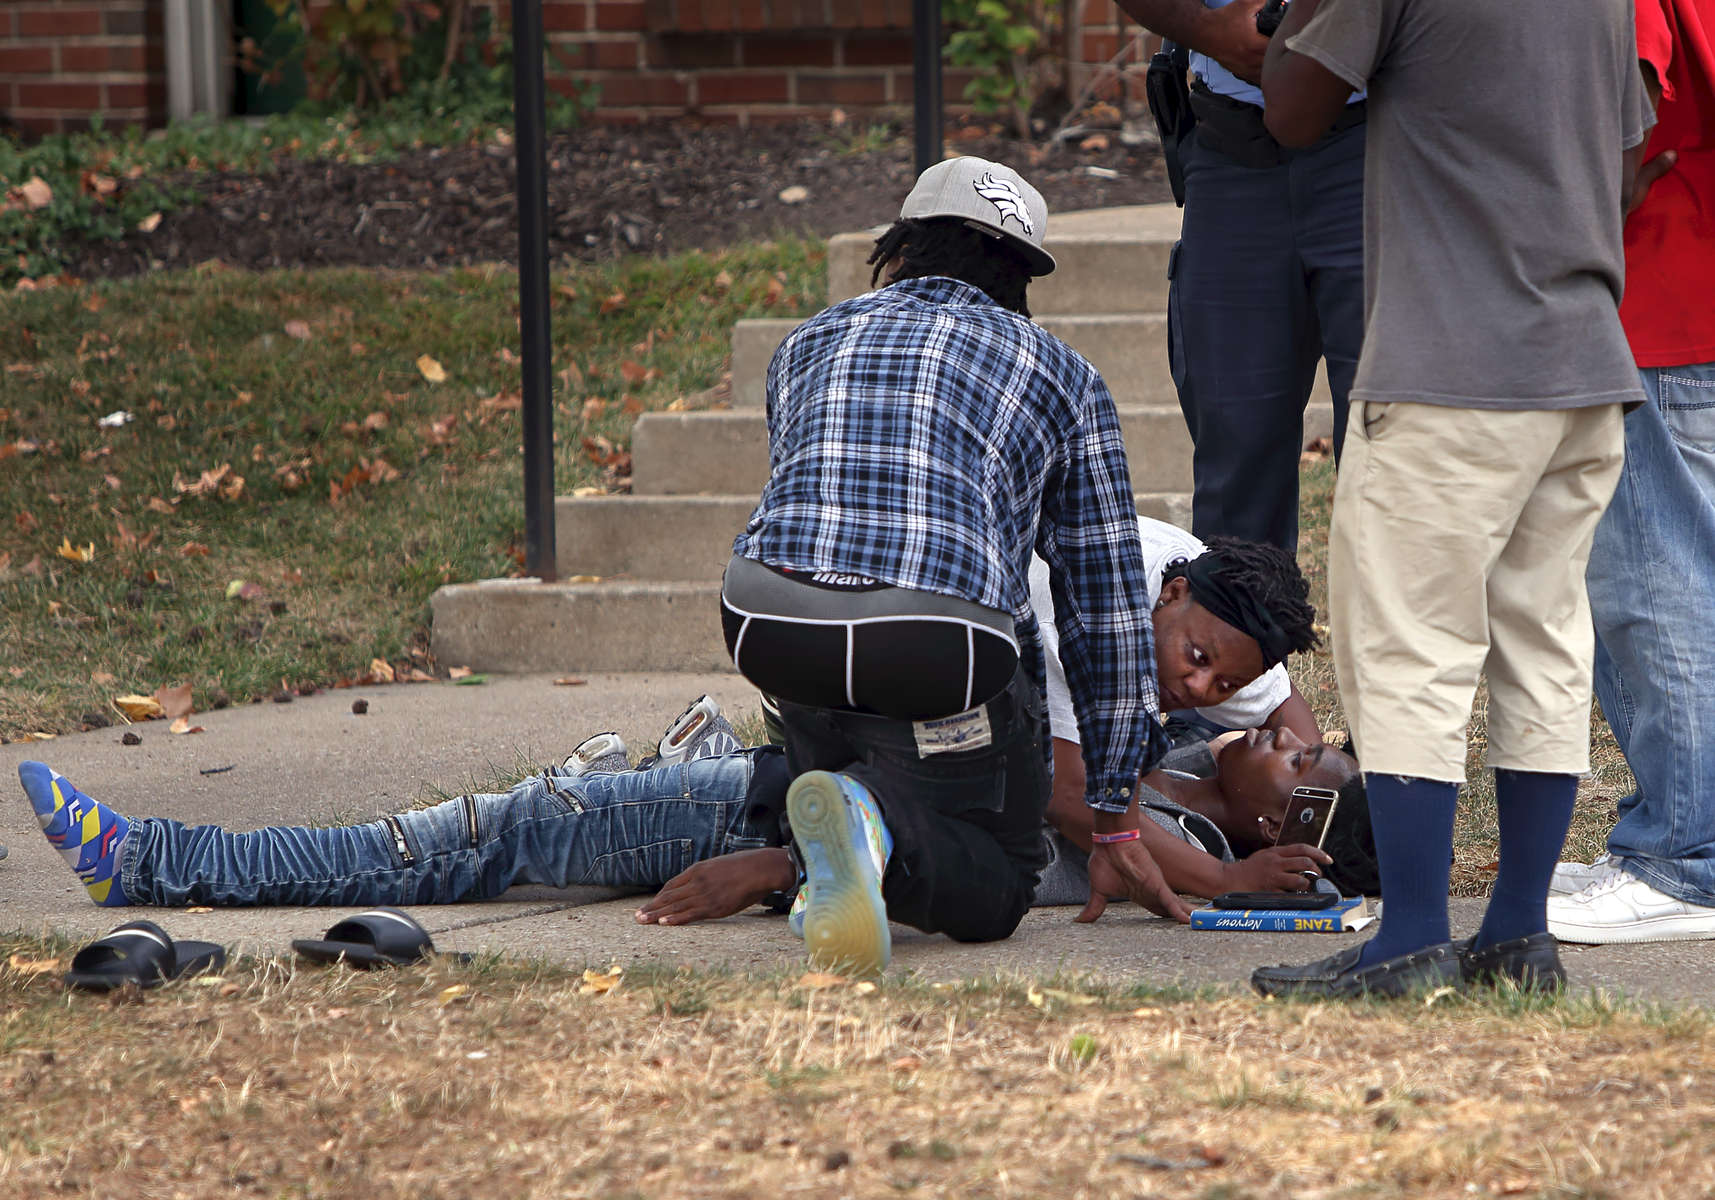 A woman leans in to talk with her nephew who was shot in the 1800 block of O'Fallon Street in St. Louis on Friday, Oct. 6, 2017. Two 20-year-old men on foot were shot by a suspect driving a silver Nissan Altima at about 2:40 p.m. Both men were transported to the hospital. One was shot twice in the upper torso and is in critical condition and the other was shot in the leg and is in stable condition.  Photo by David Carson, dcarson@post-dispatch.com